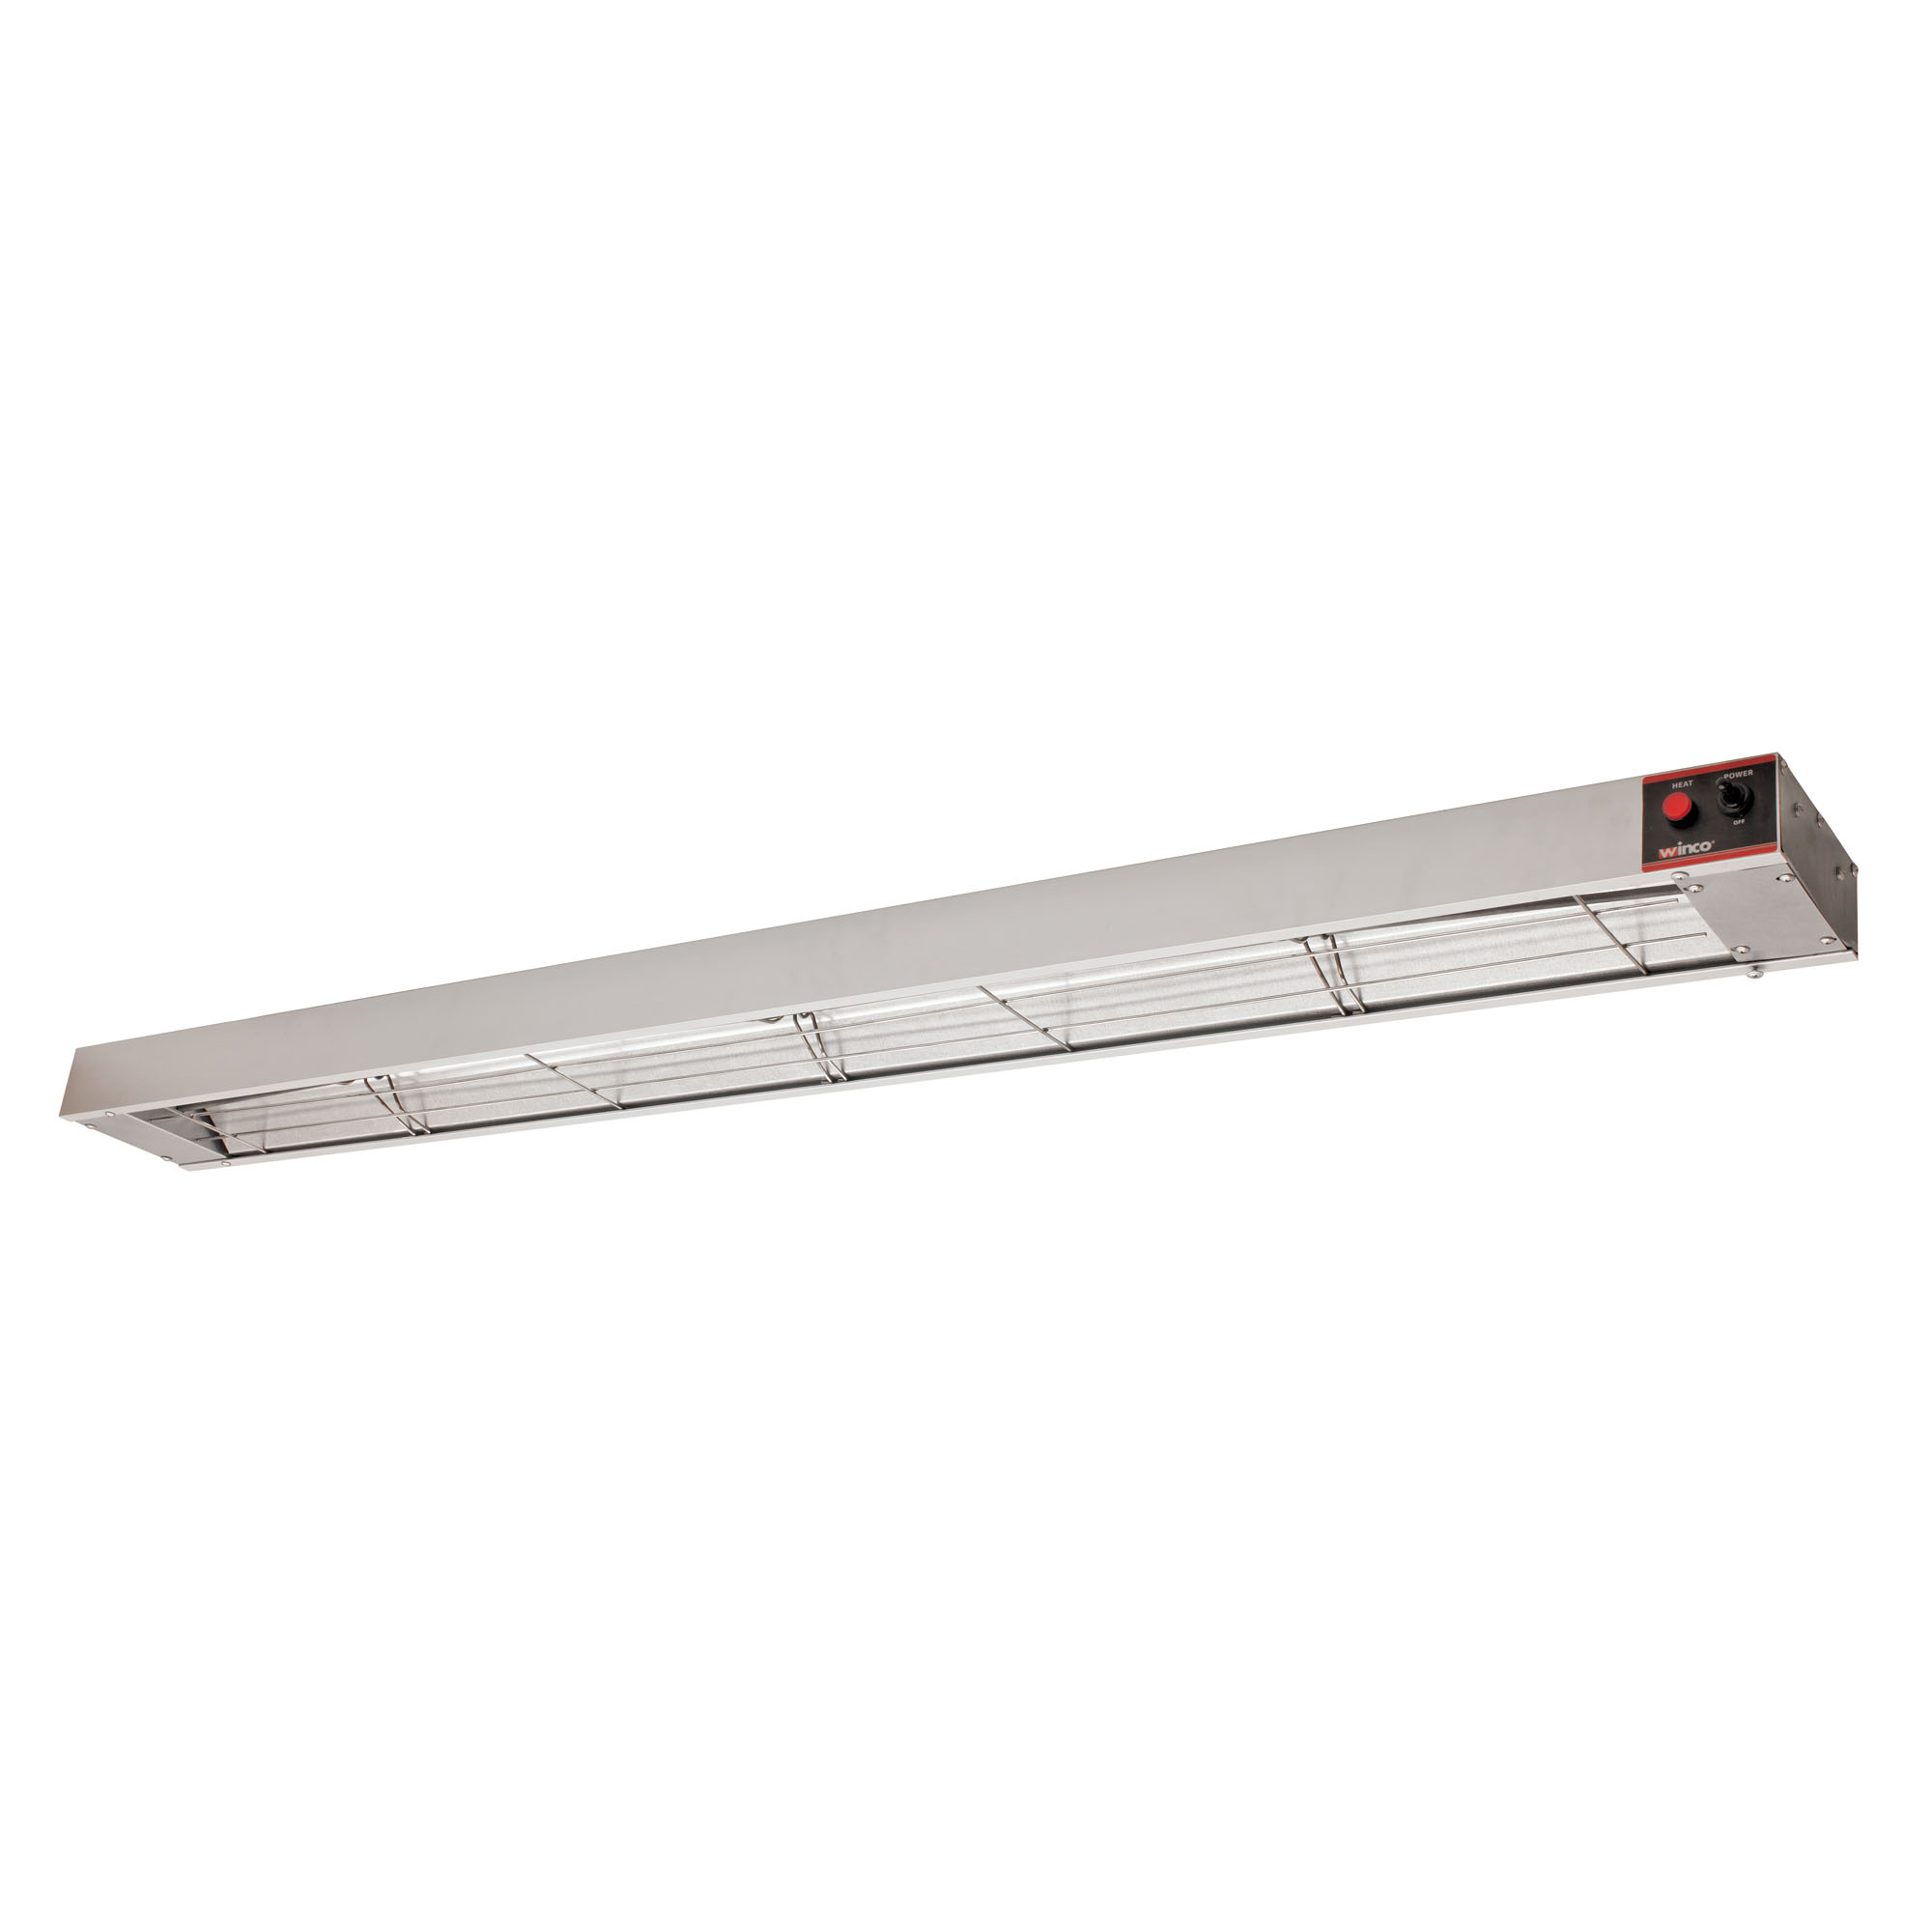 Winco ESH-60 heat lamp, strip type